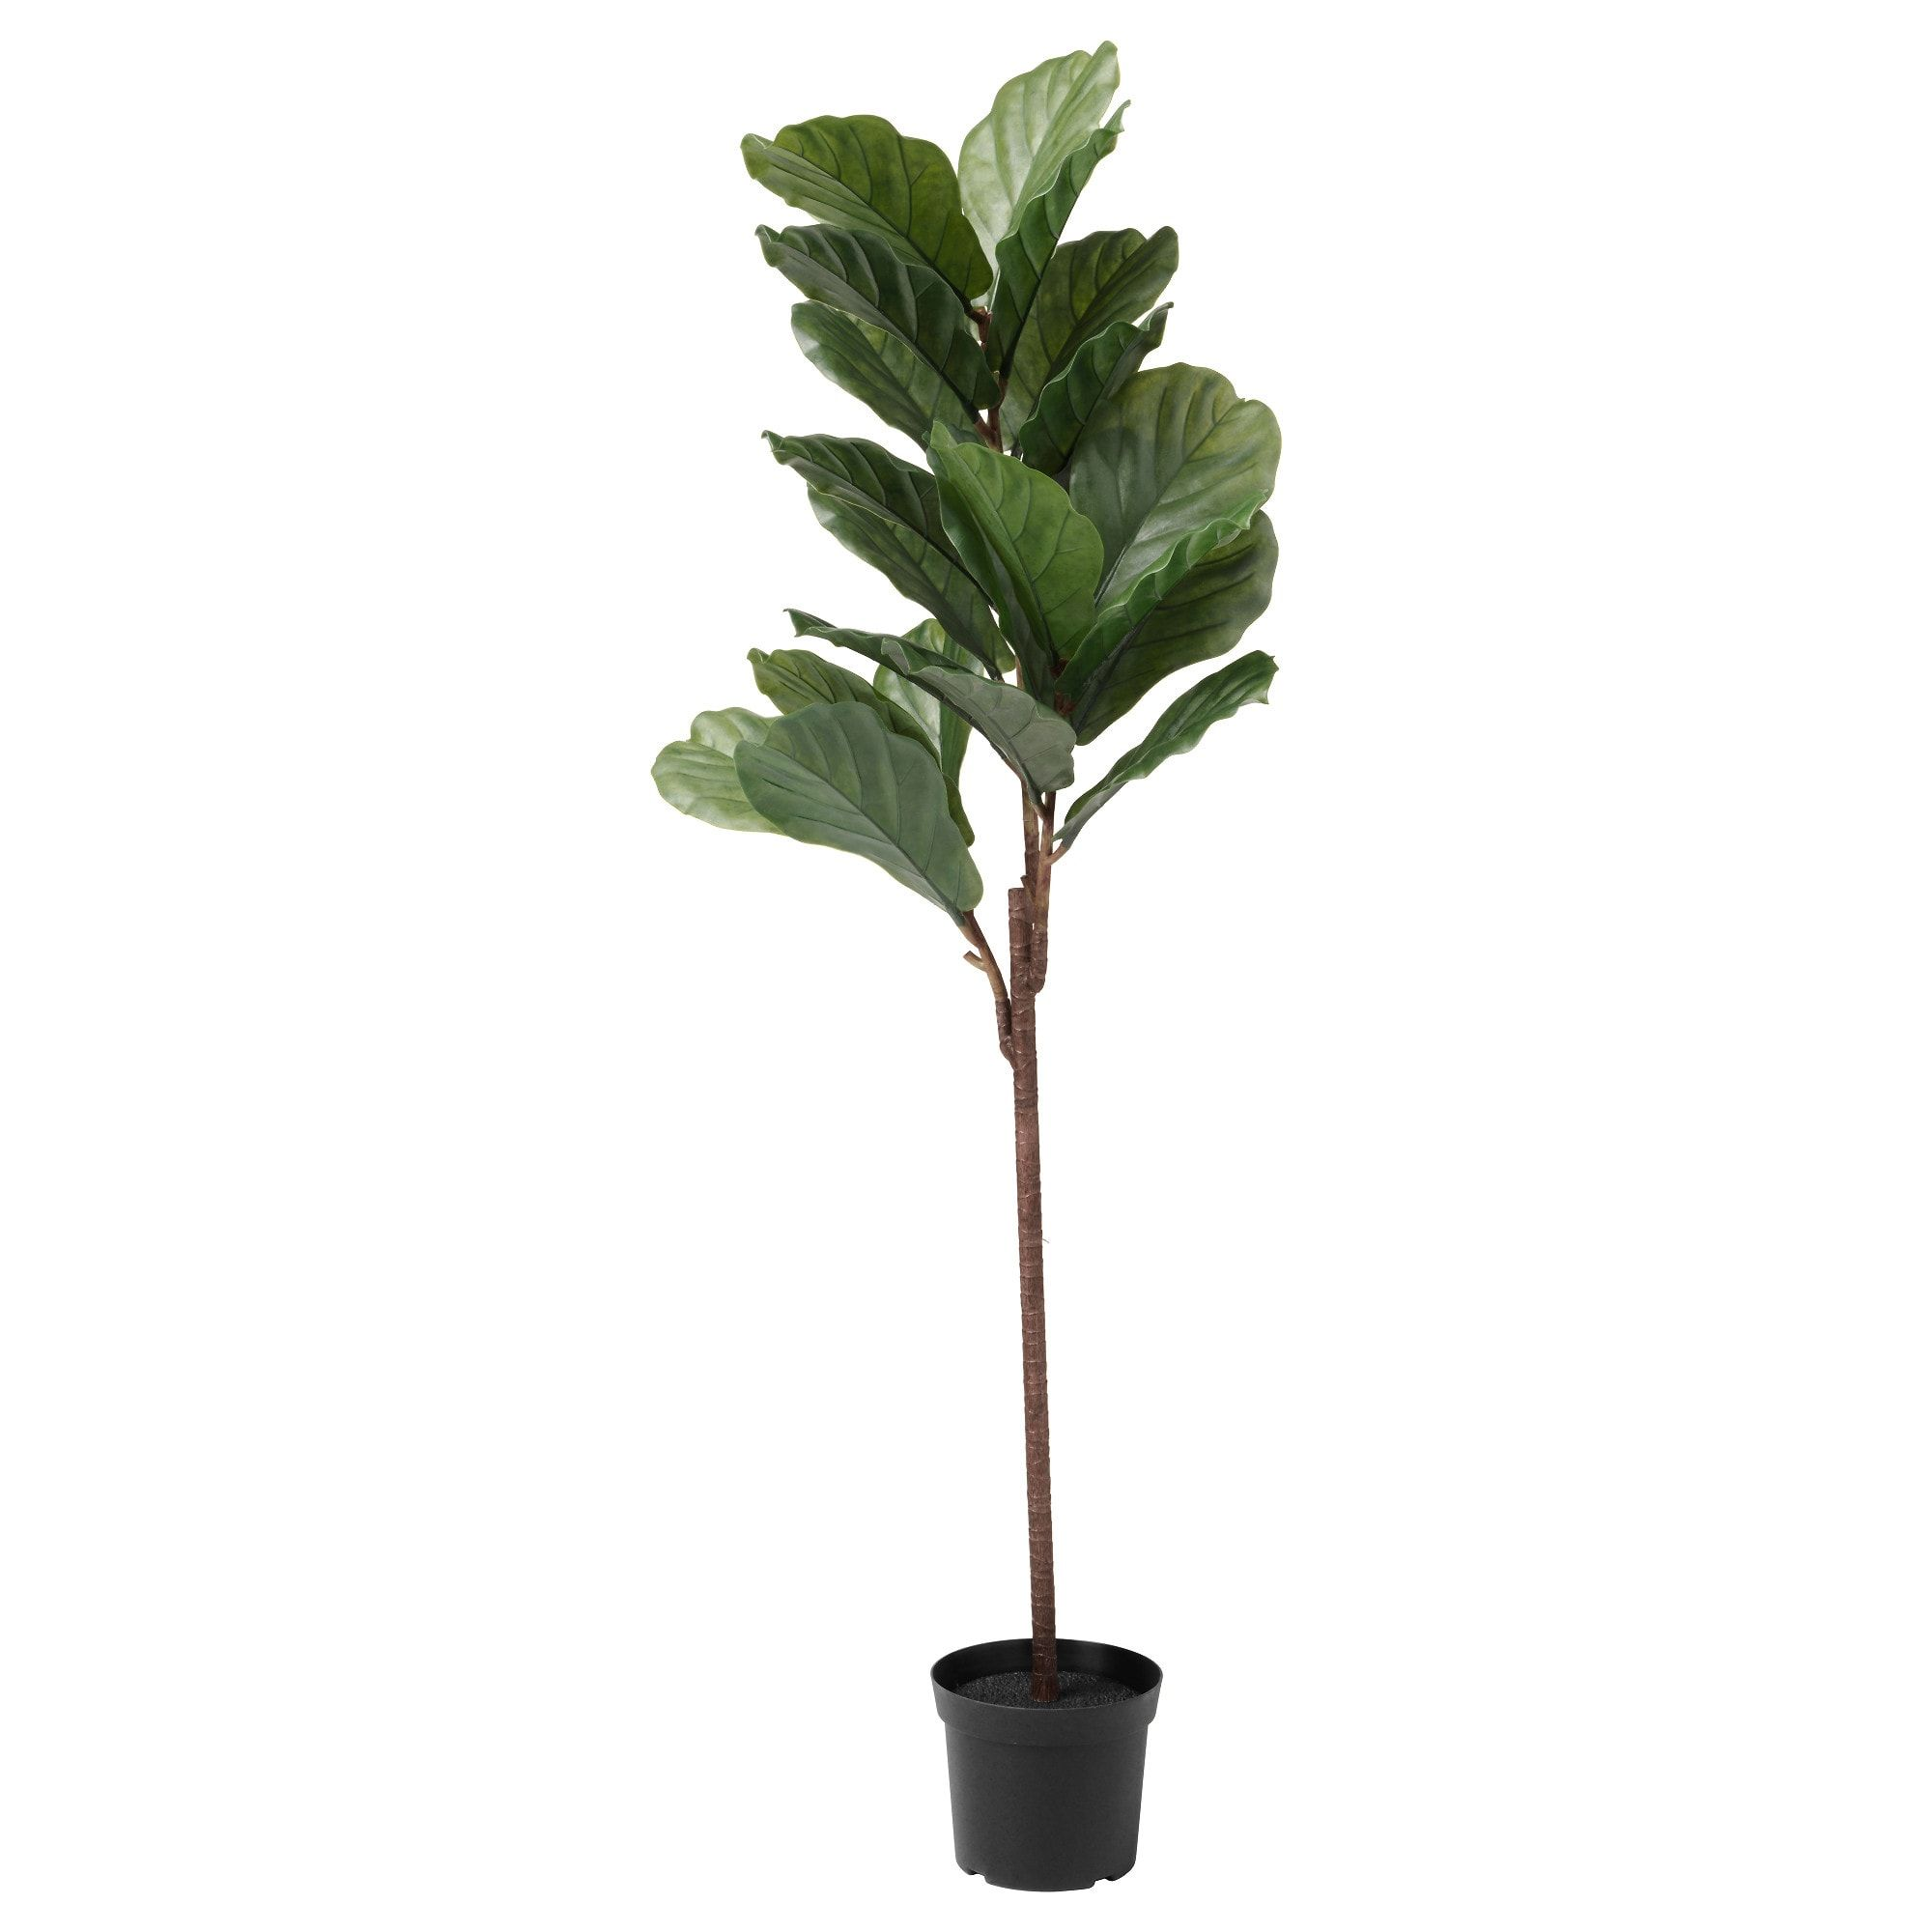 Ikea Palm Tree Fejka Artificial Potted Plant Indoor Outdoor Fiddle Leaf Fig In